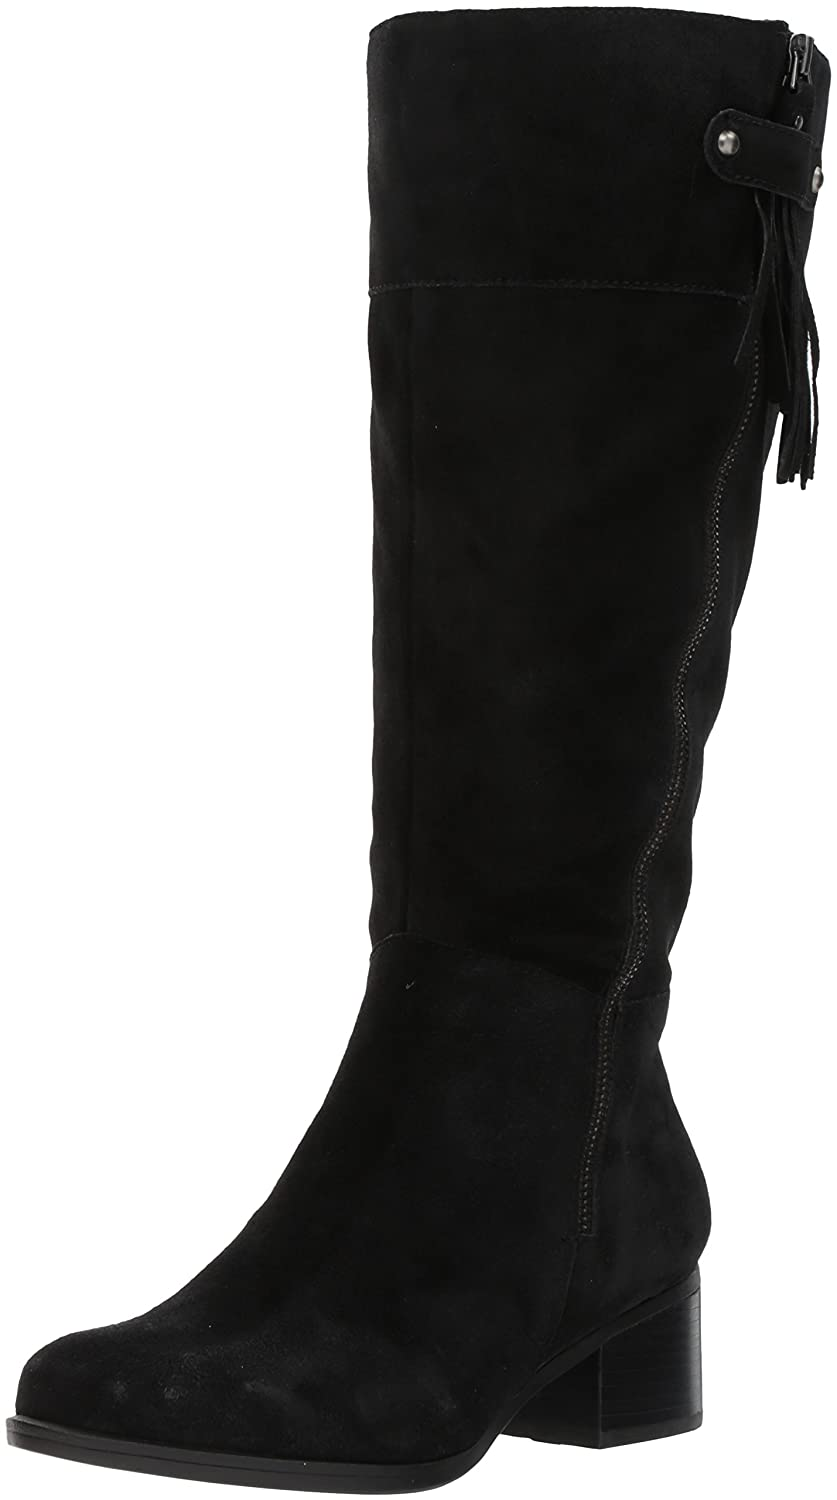 Naturalizer Women's Demi Wc Riding Boot B07173WHQ1 11 2W US|Black/Black